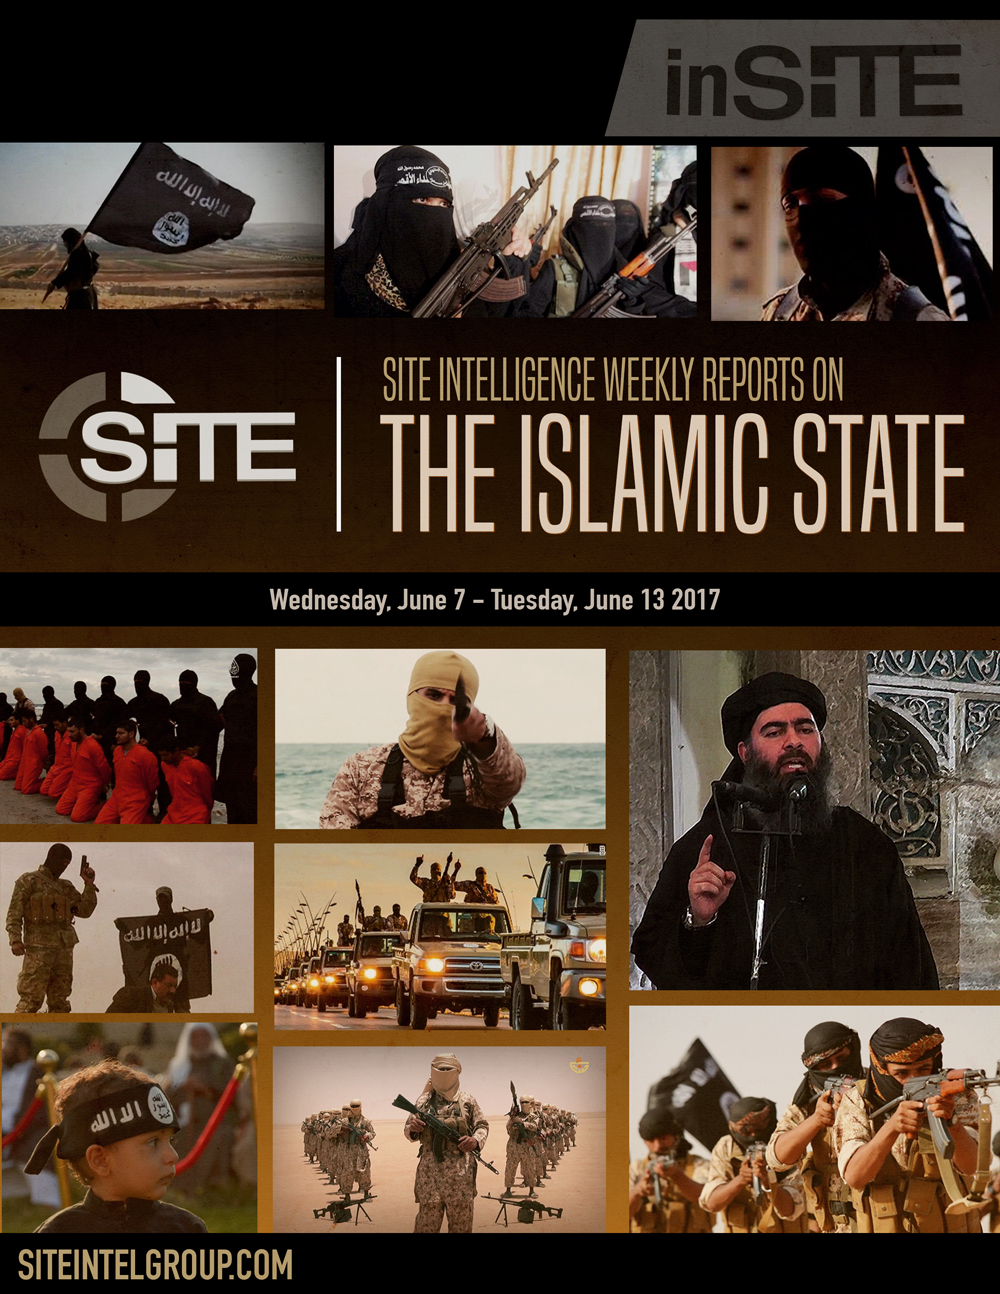 Weekly inSITE on the Islamic State, July 12 - 18, 2017